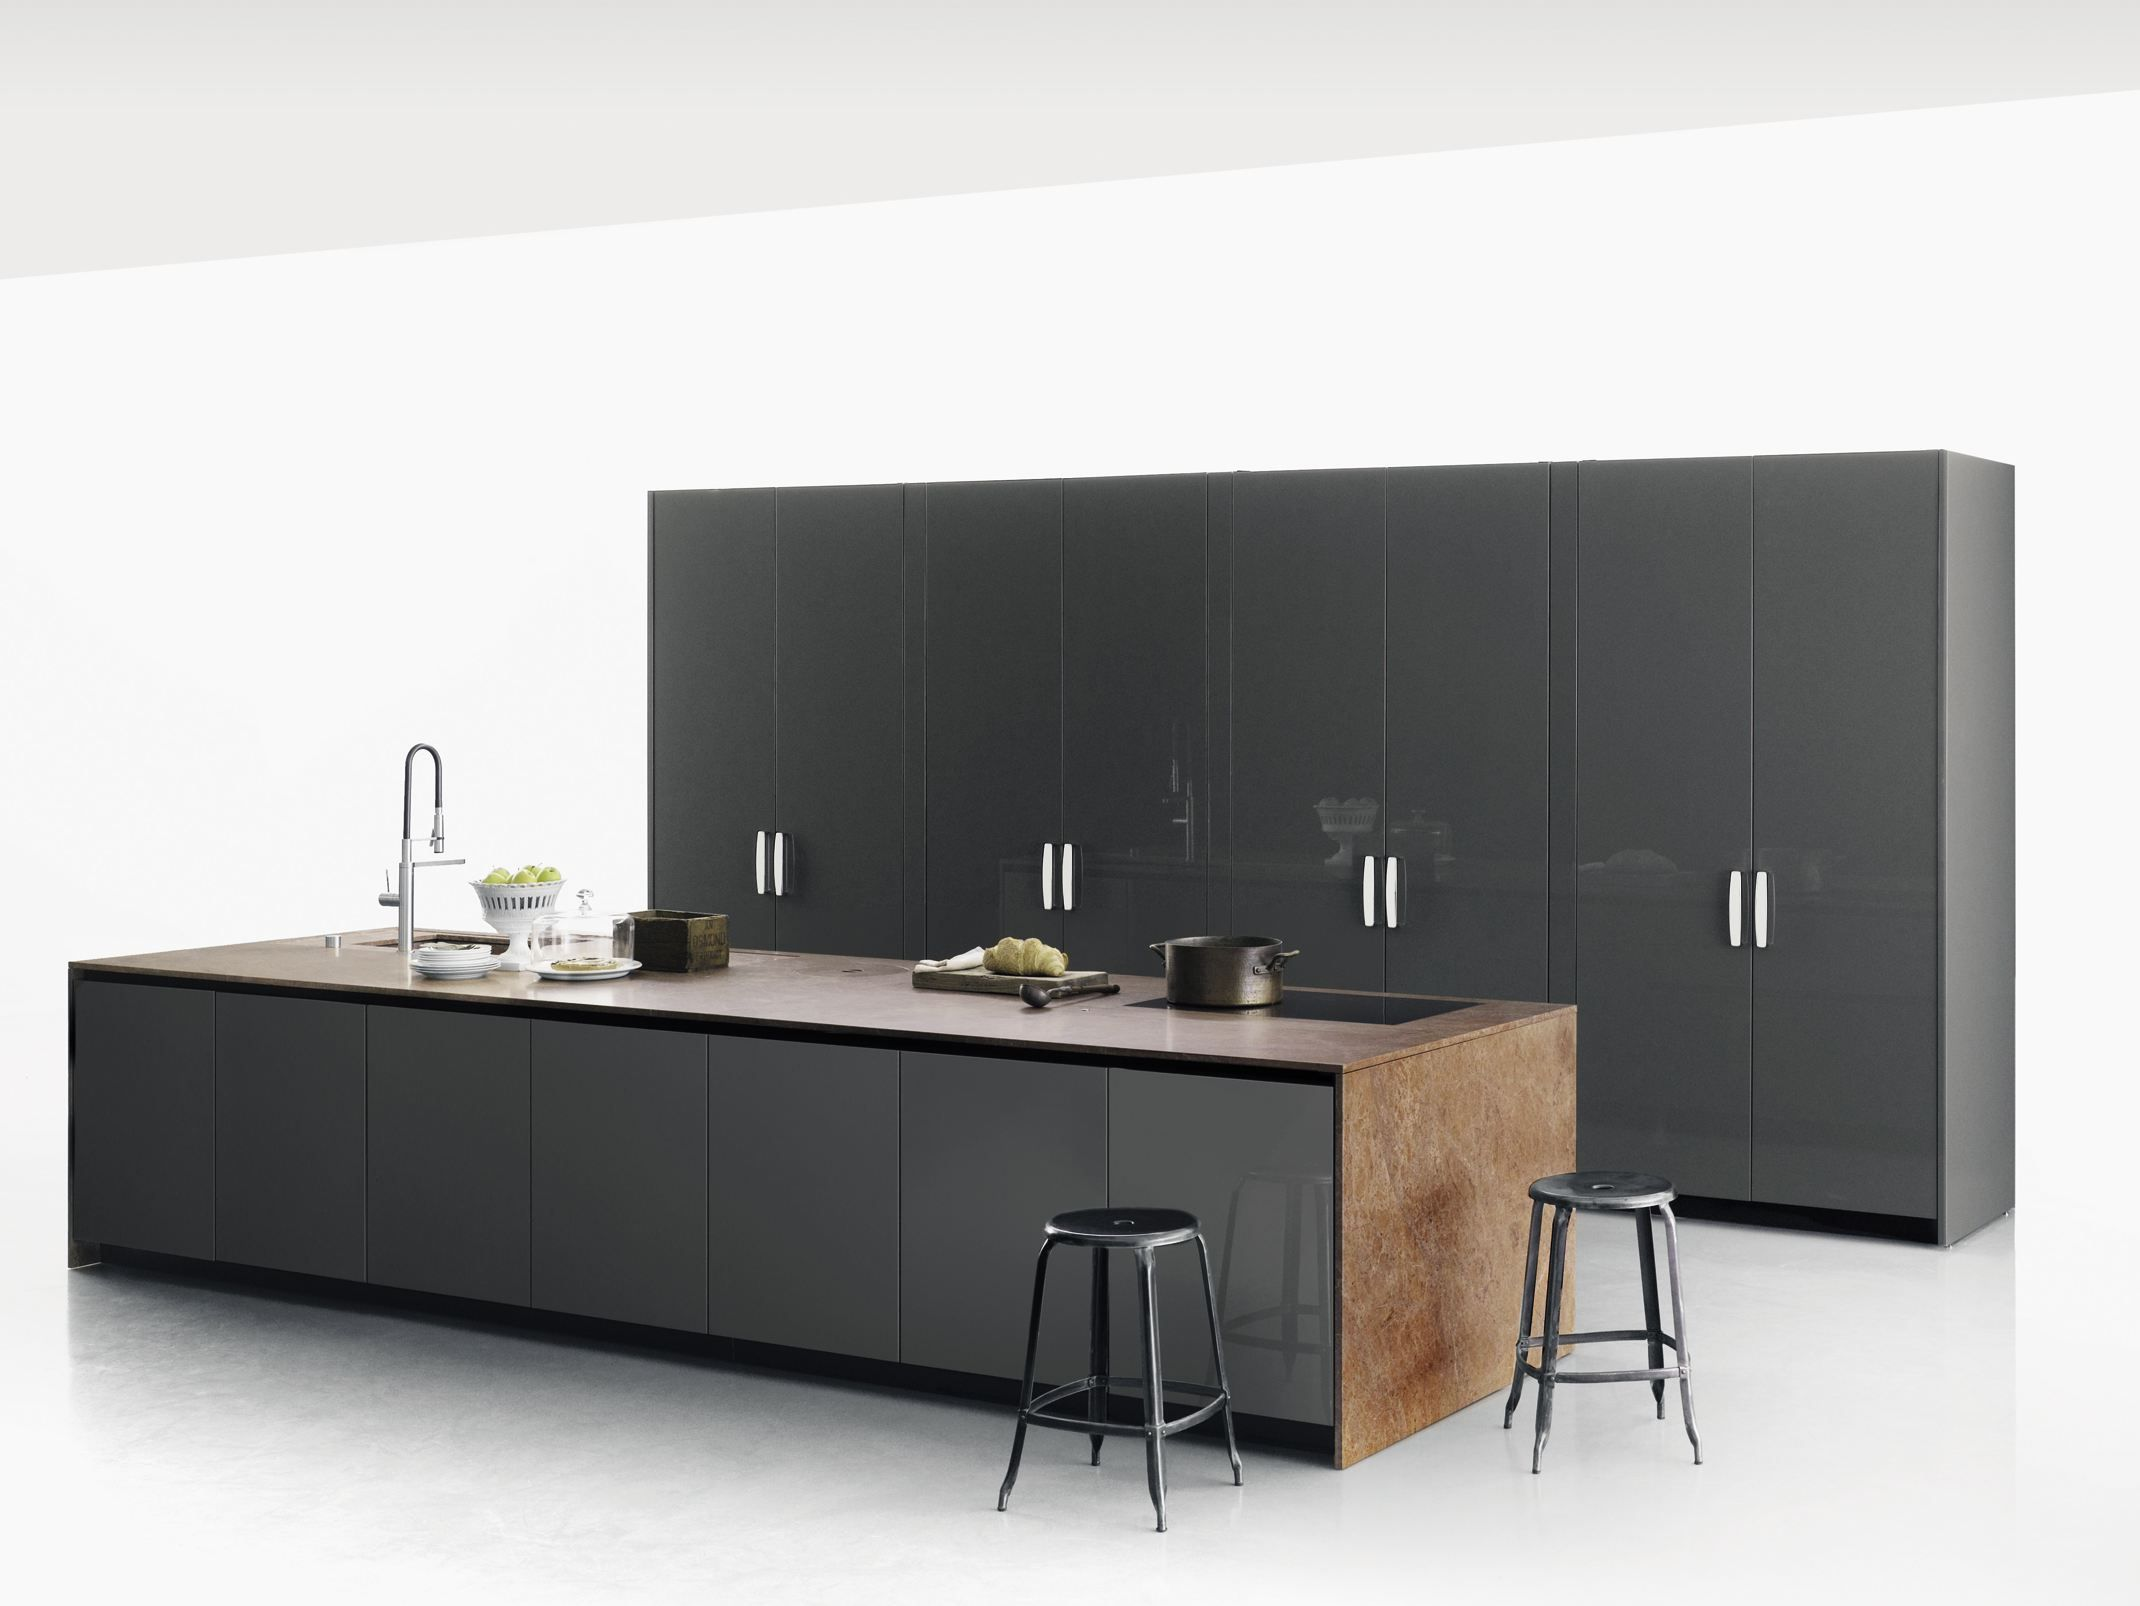 boffi kitchens | would prefer some lighter grey,...the ...